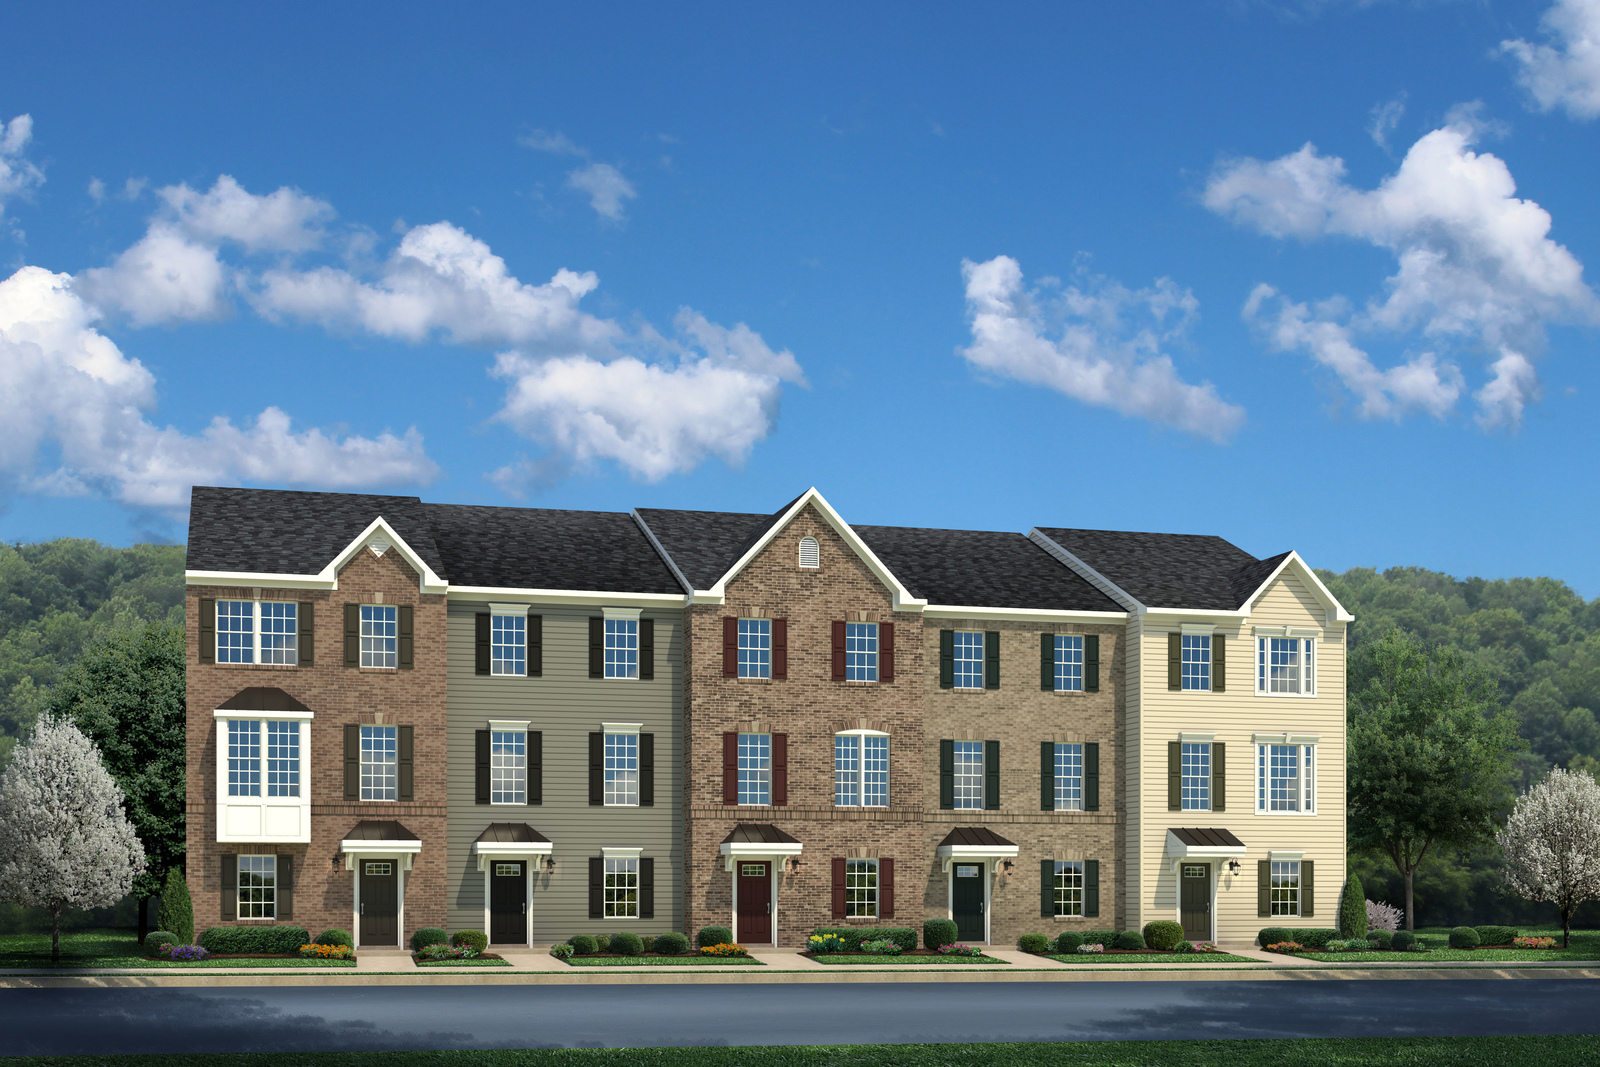 New Townhomes In Lansdale Pa | Tyres2c